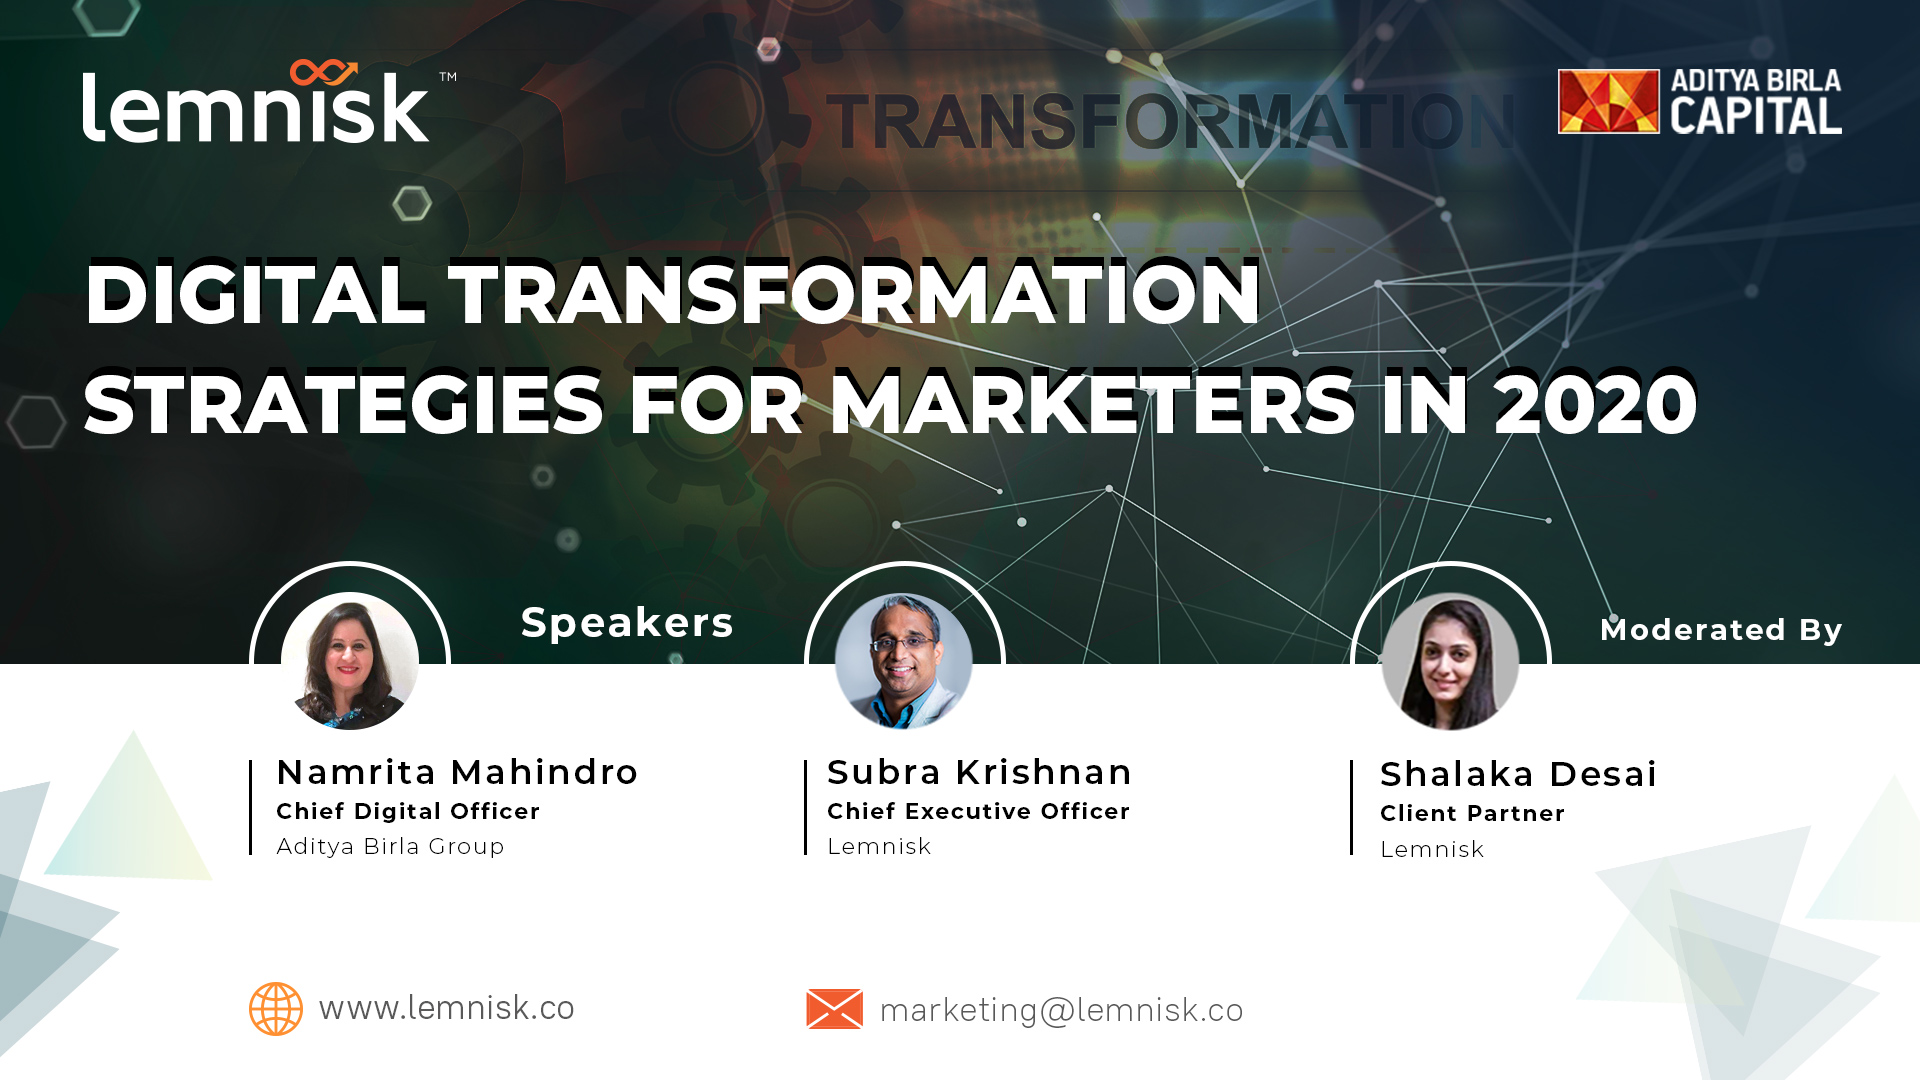 Digital Transformation Strategies for Marketers in 2020